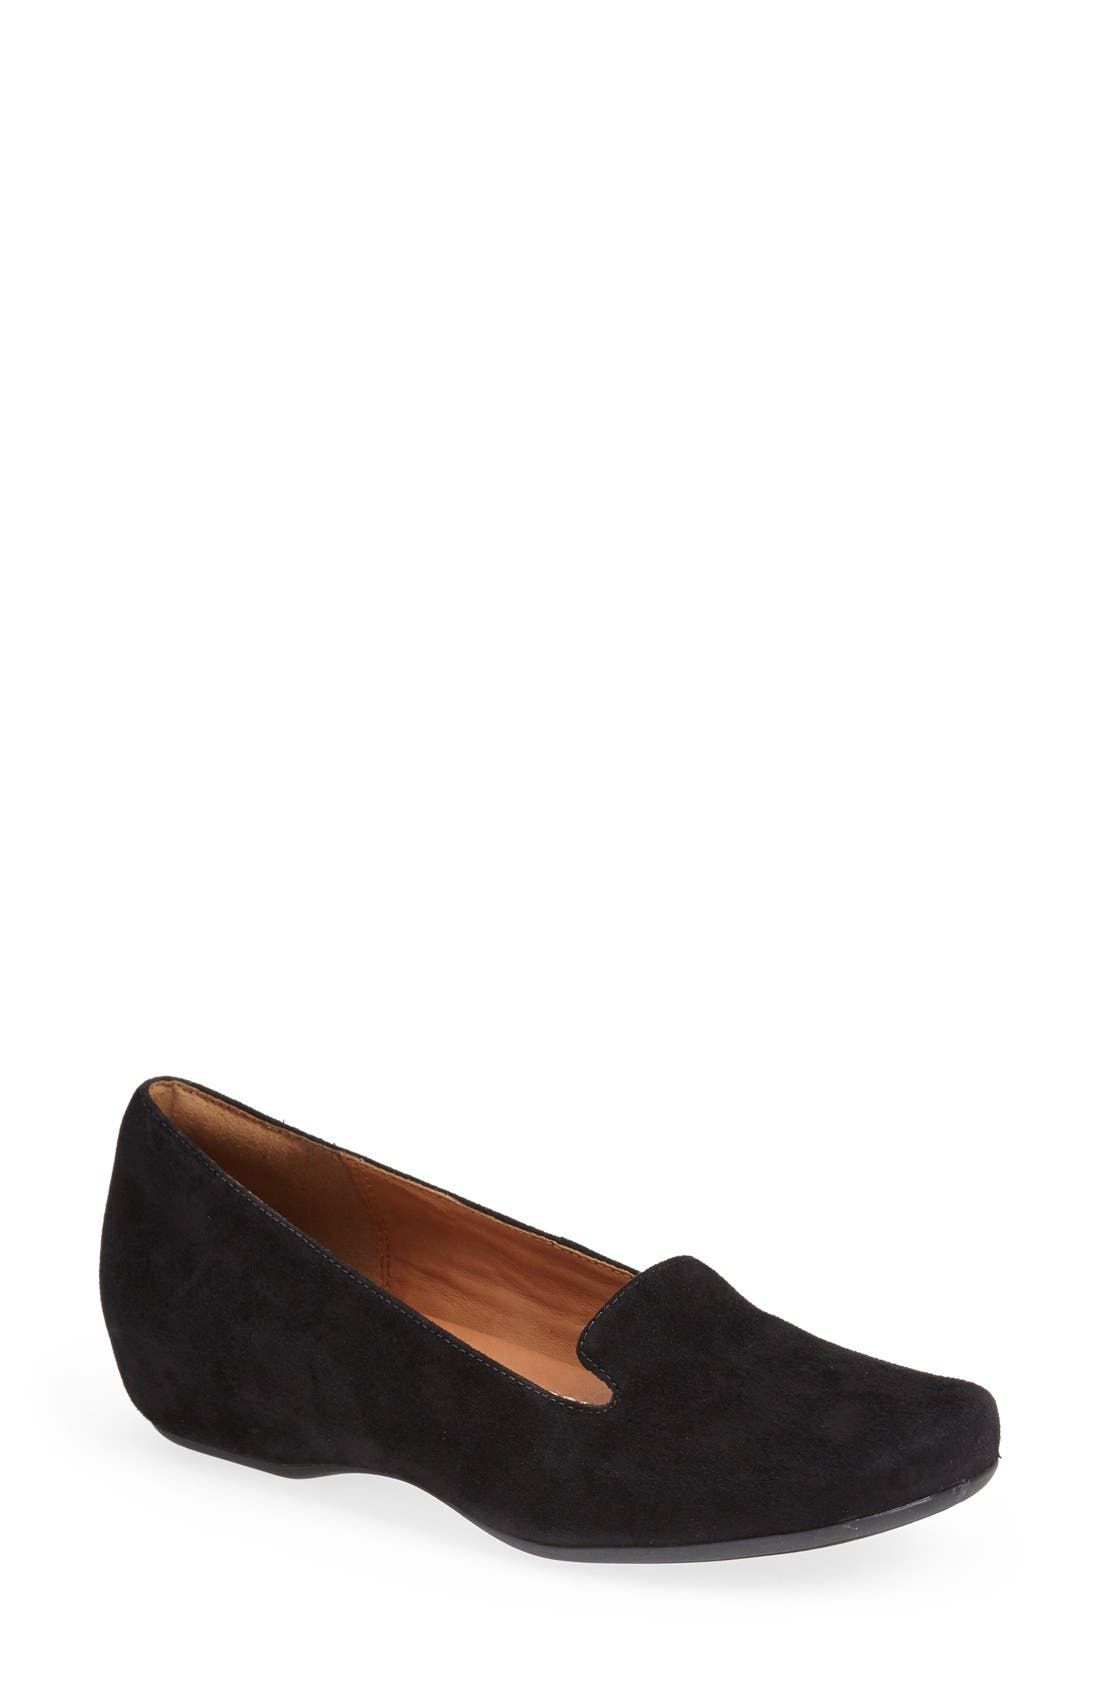 Alternate Image 1 Selected - Clarks® 'Concert Jazz' Suede Flat (Women)